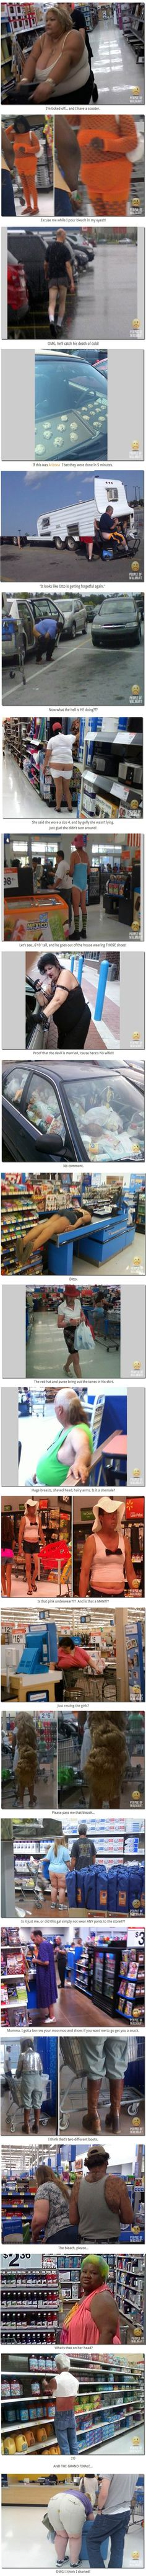 The Best (or Worst?) of the People of Walmart - Part 4 | Boo Fckm HooBoo Fckm Hoo http://ibeebz.com